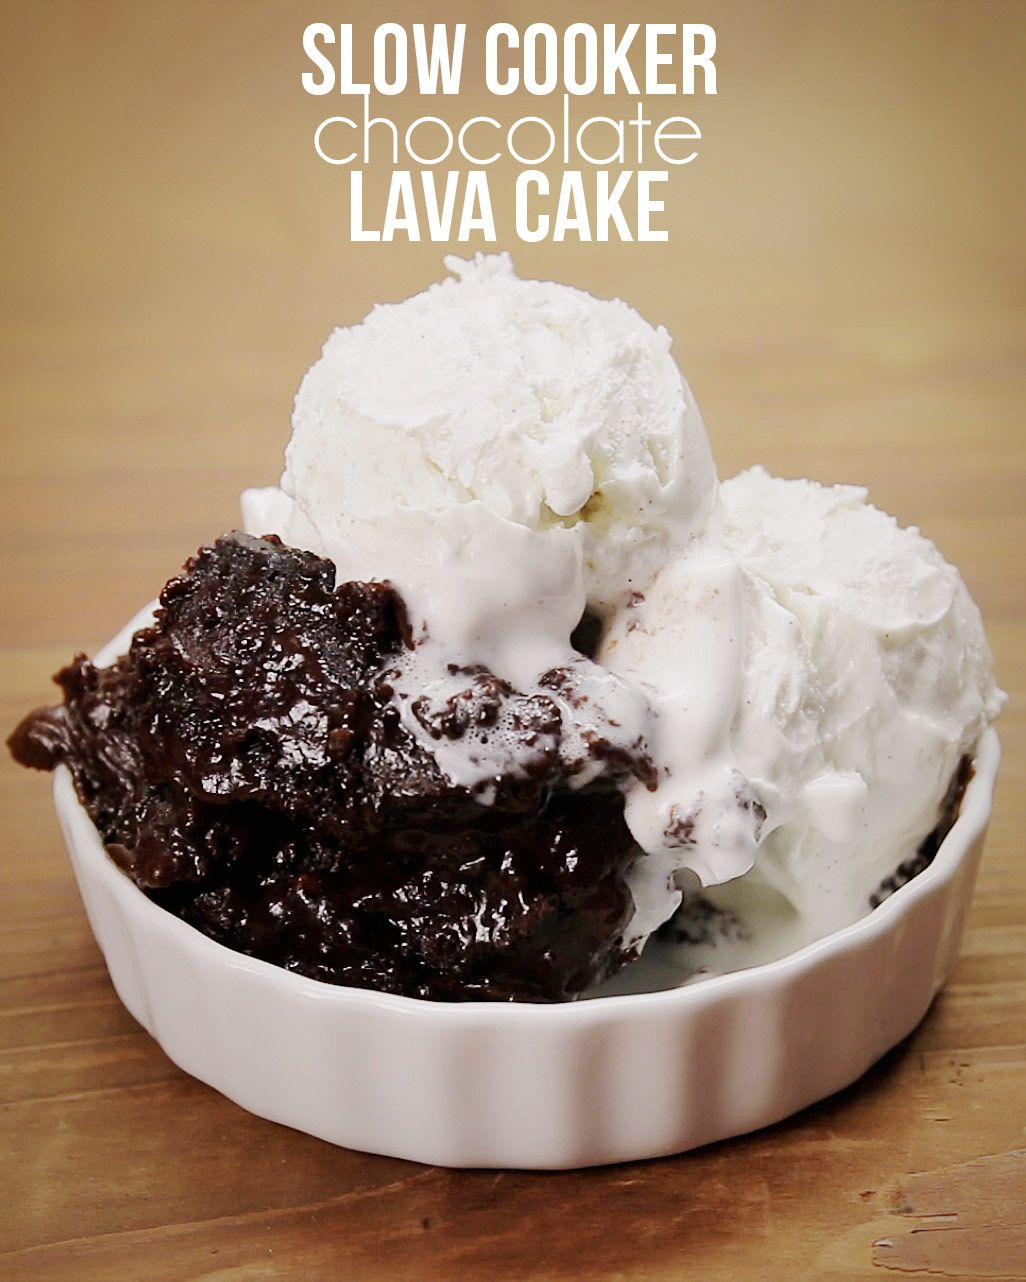 Slow Cooker Chocolate Lava Cake | crock it | Pinterest | Chocolate ...